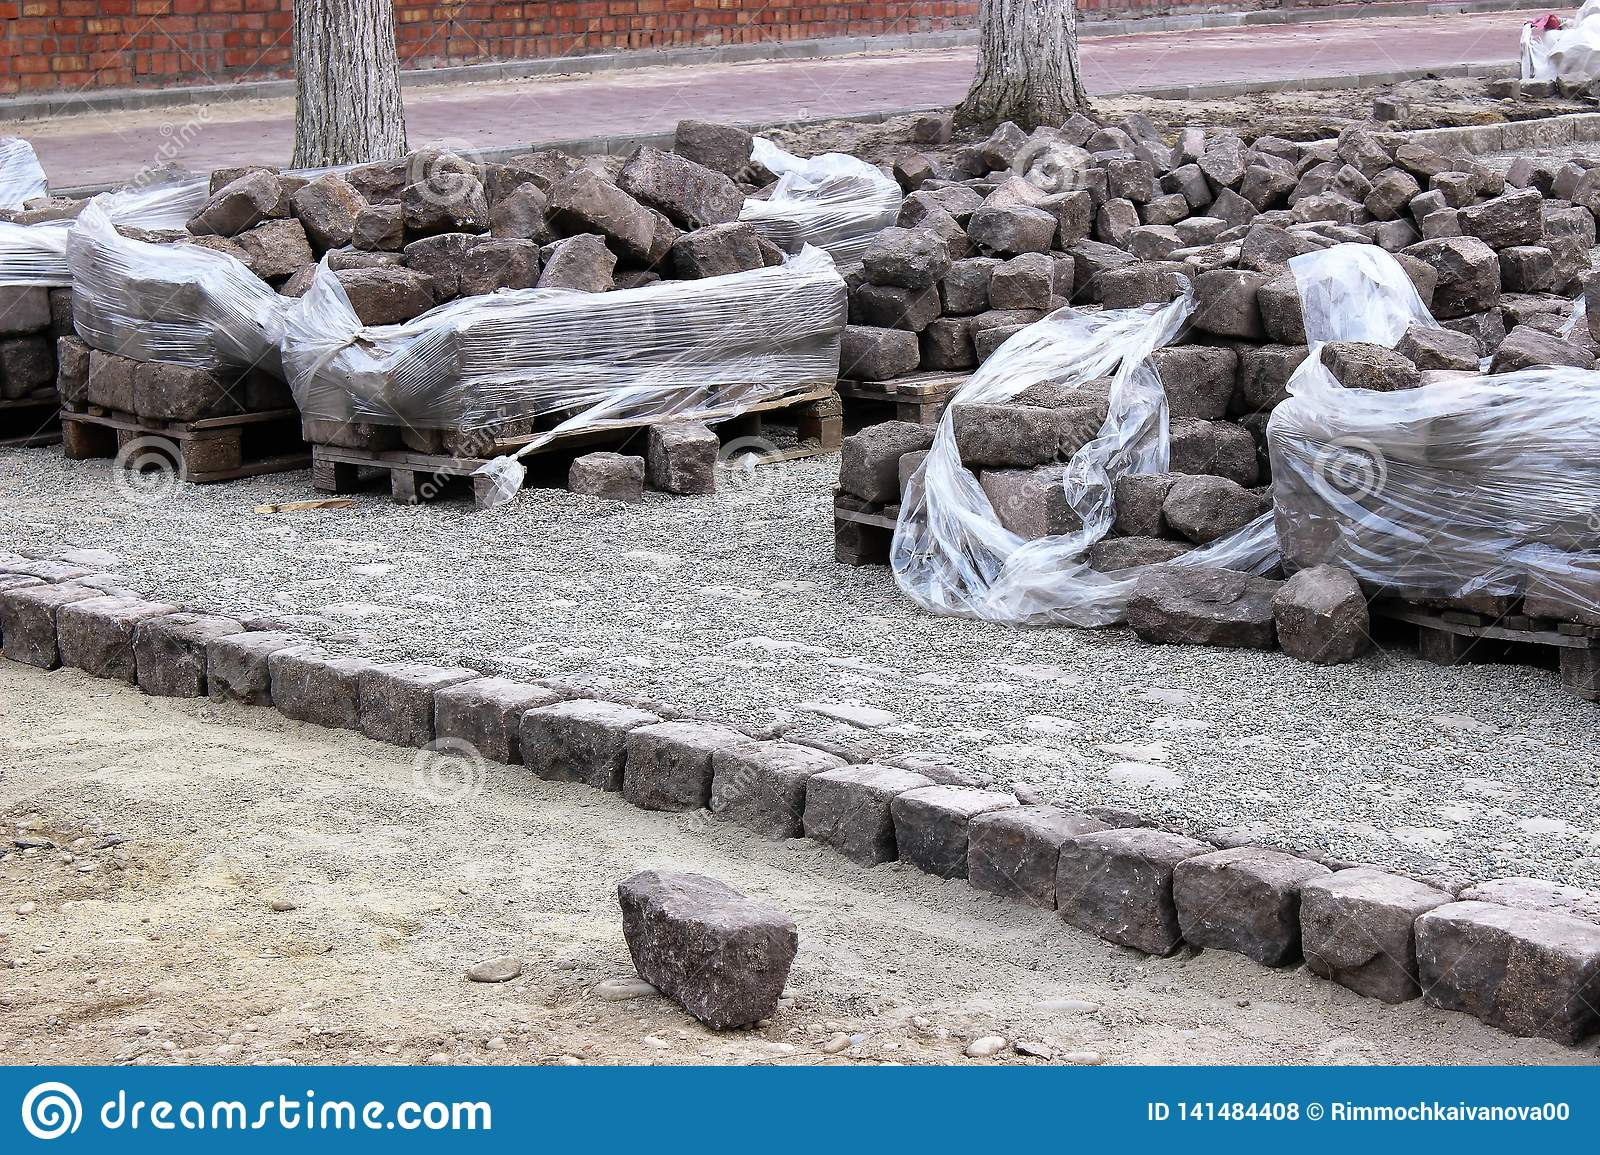 Stacks of old cobblestones lie along the street, which is being renovated